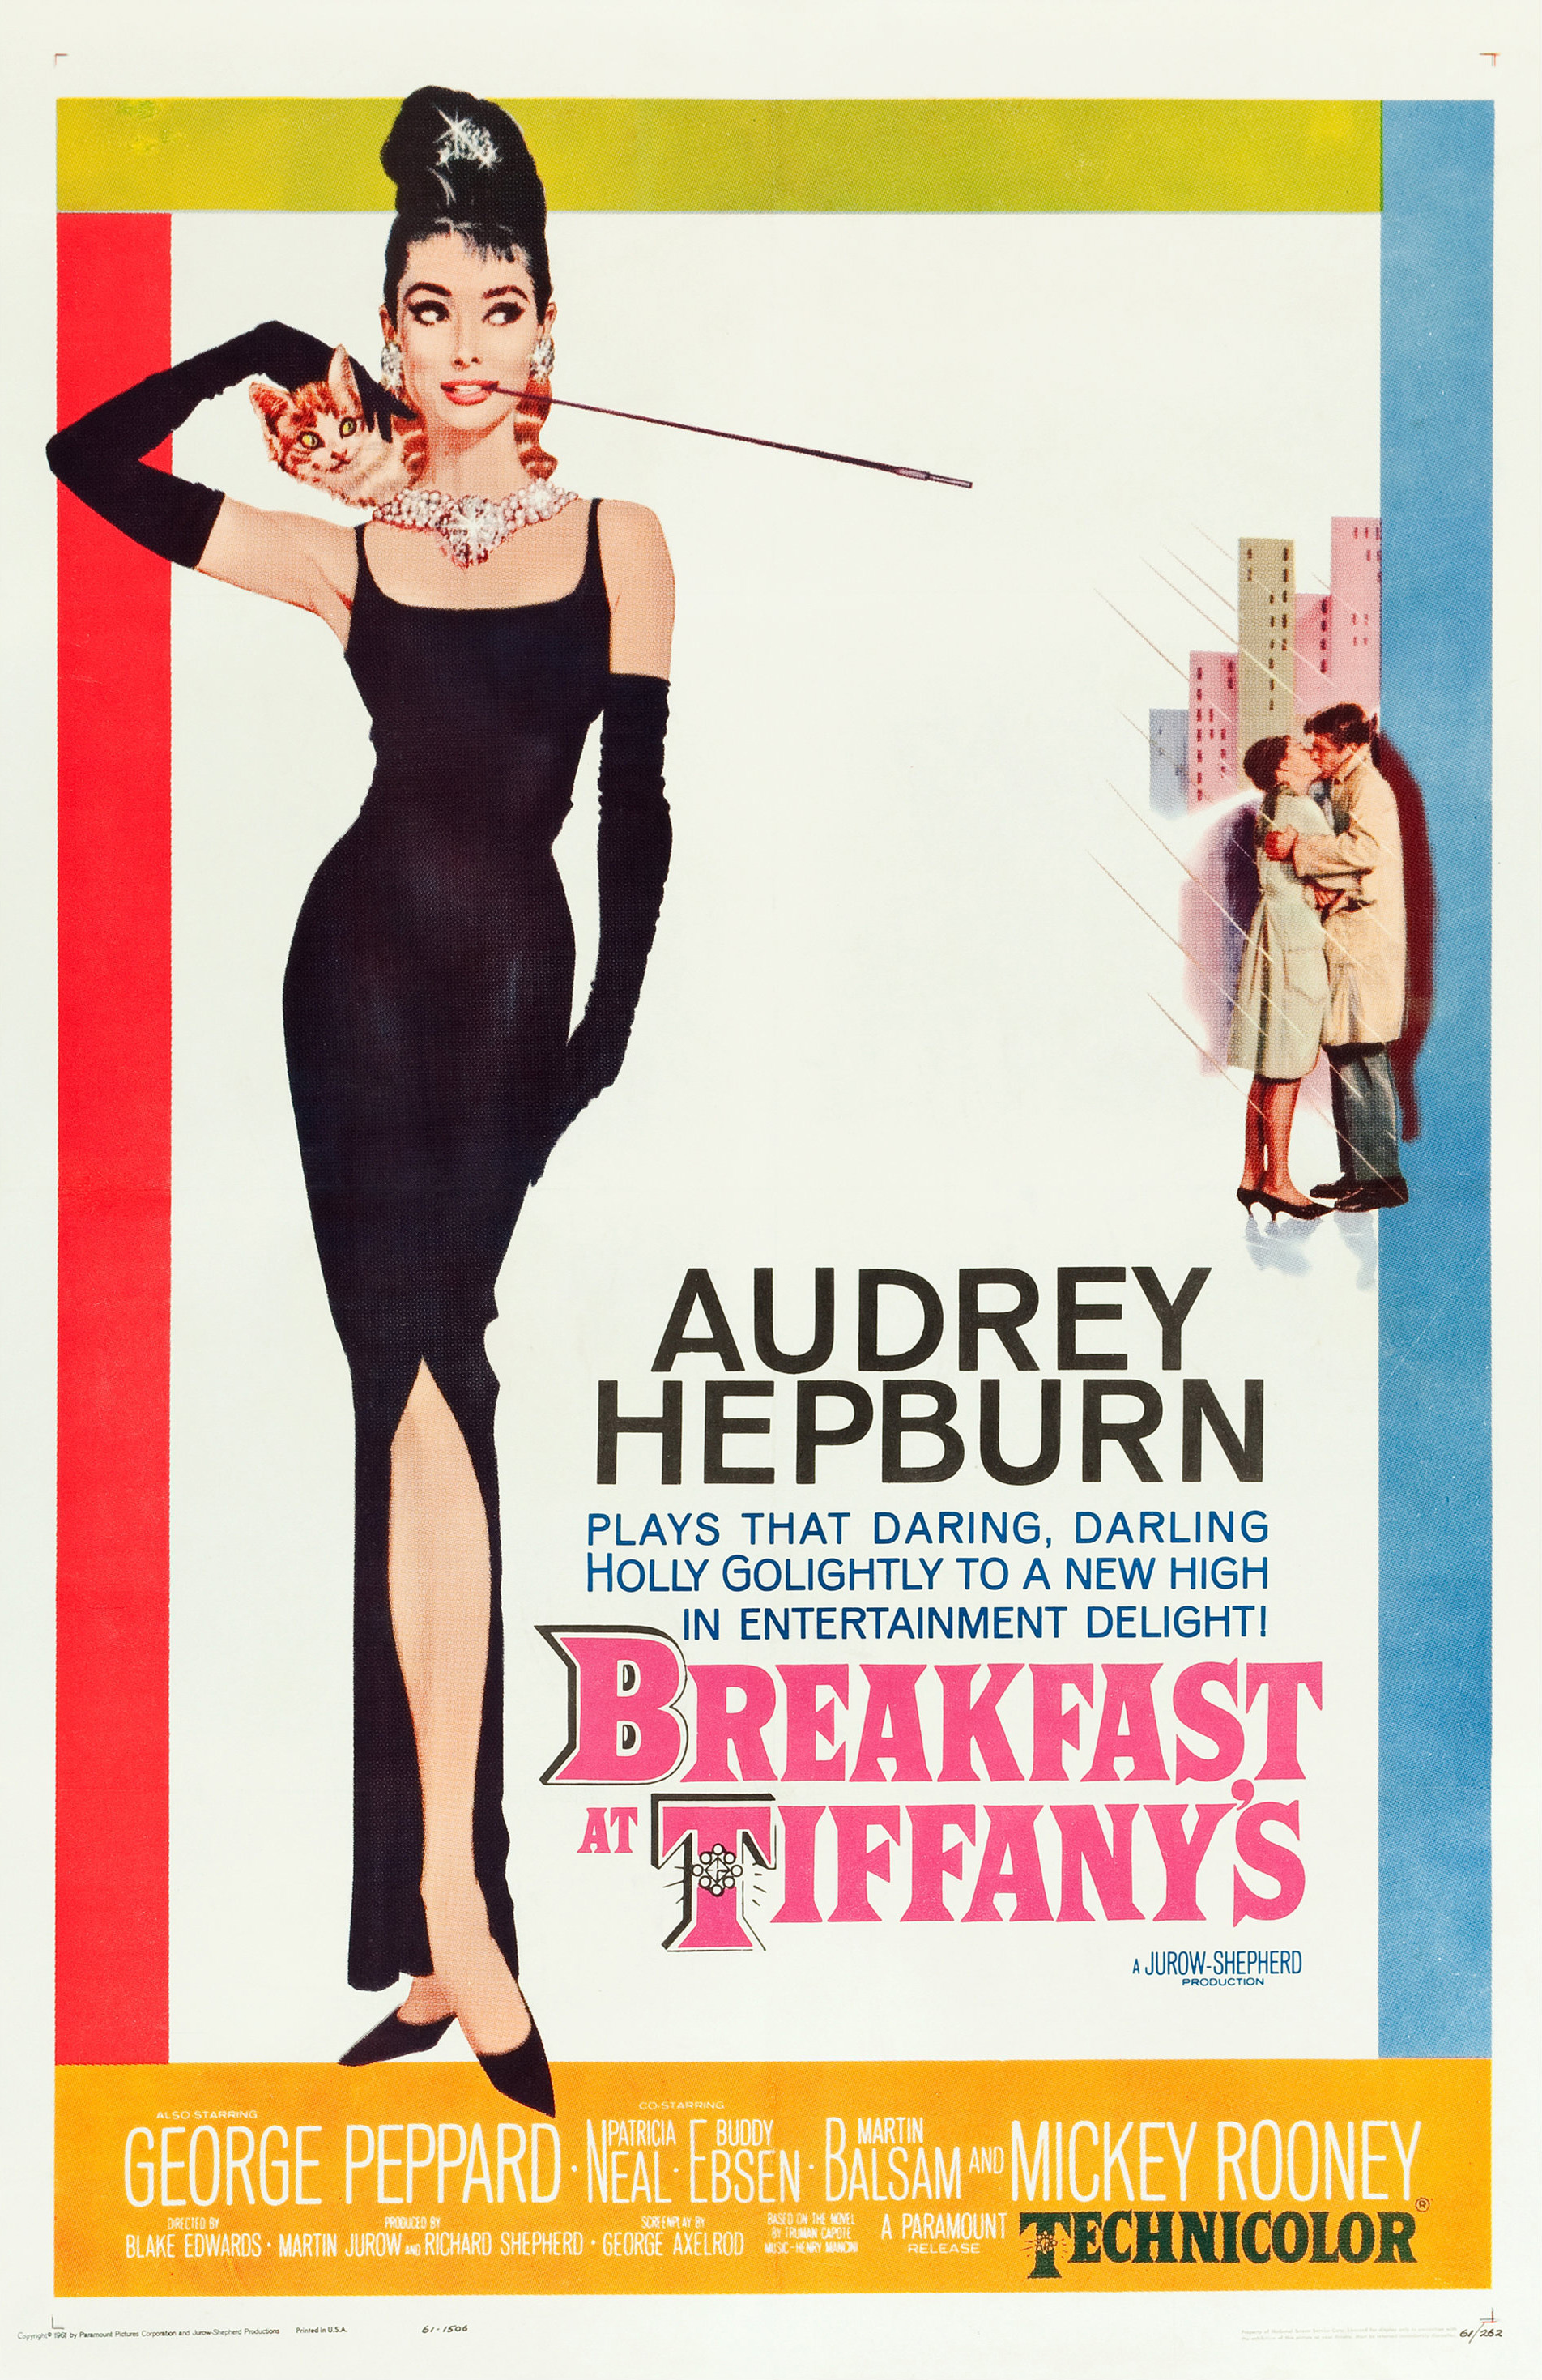 All That Way For Love 2011 breakfast at tiffany's (film) - wikipedia